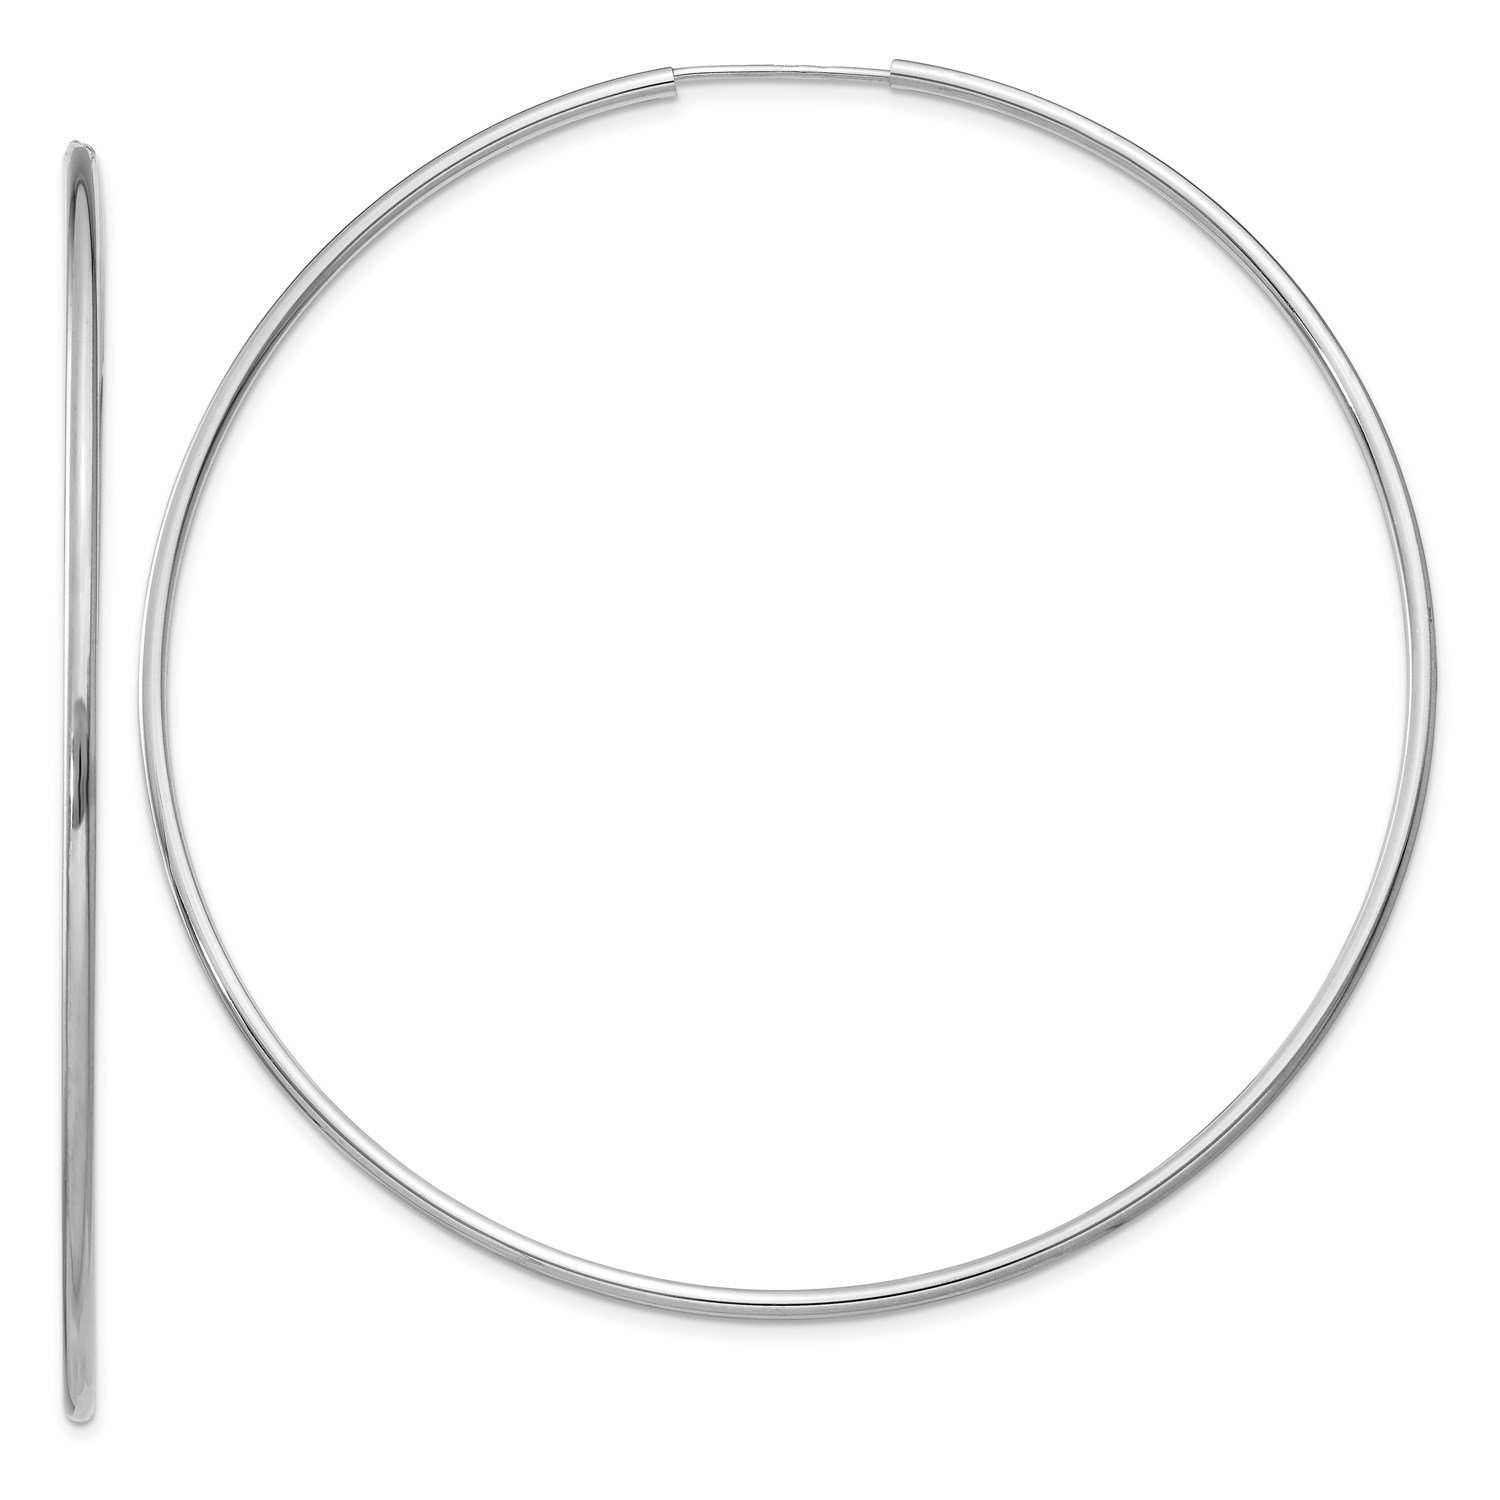 eefe0cc93c89e Endless 1.5mm gold White 14k Hoop Polished Diameter. 63mm Earrings ...